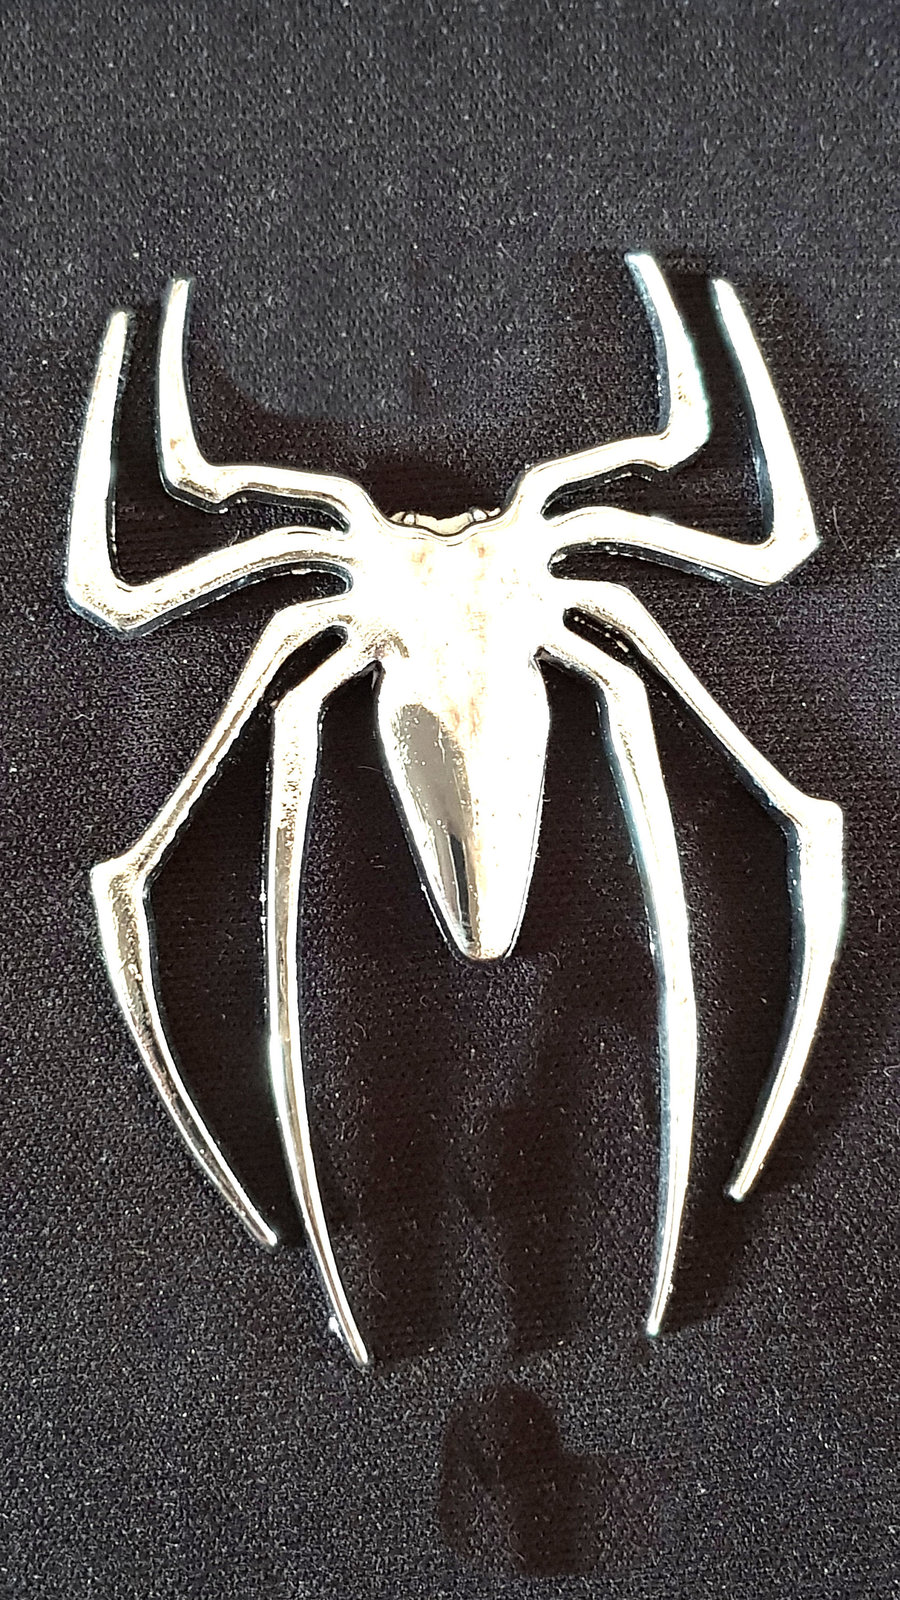 mettalised chromed,SPIDER decal ideal caravan, home, garage, car, laptop etc